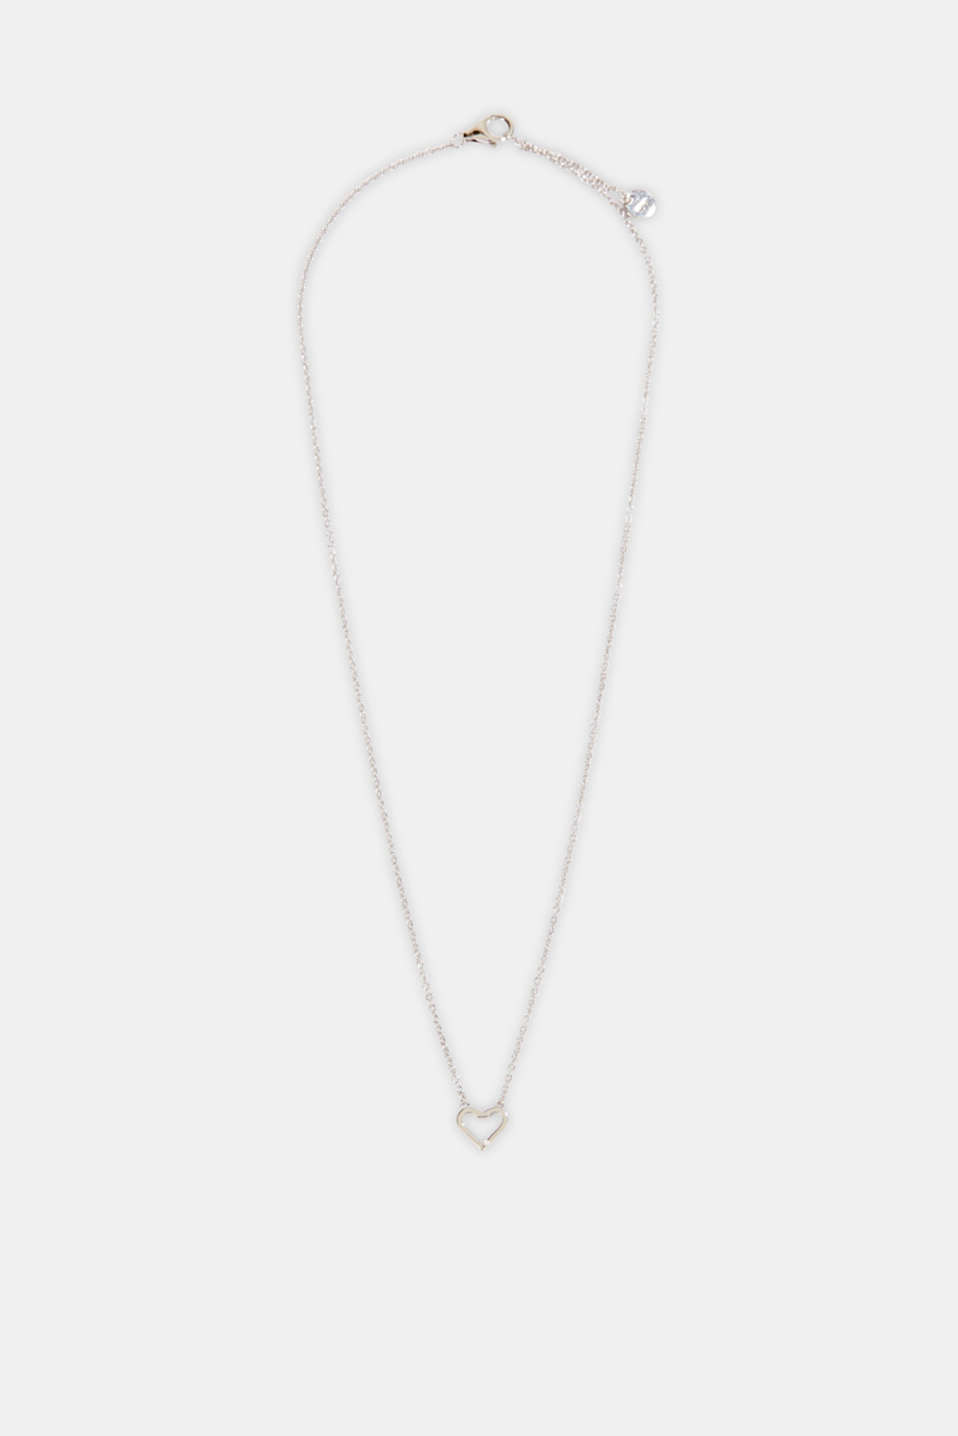 Esprit - Necklace with a heart pendant, sterling silver